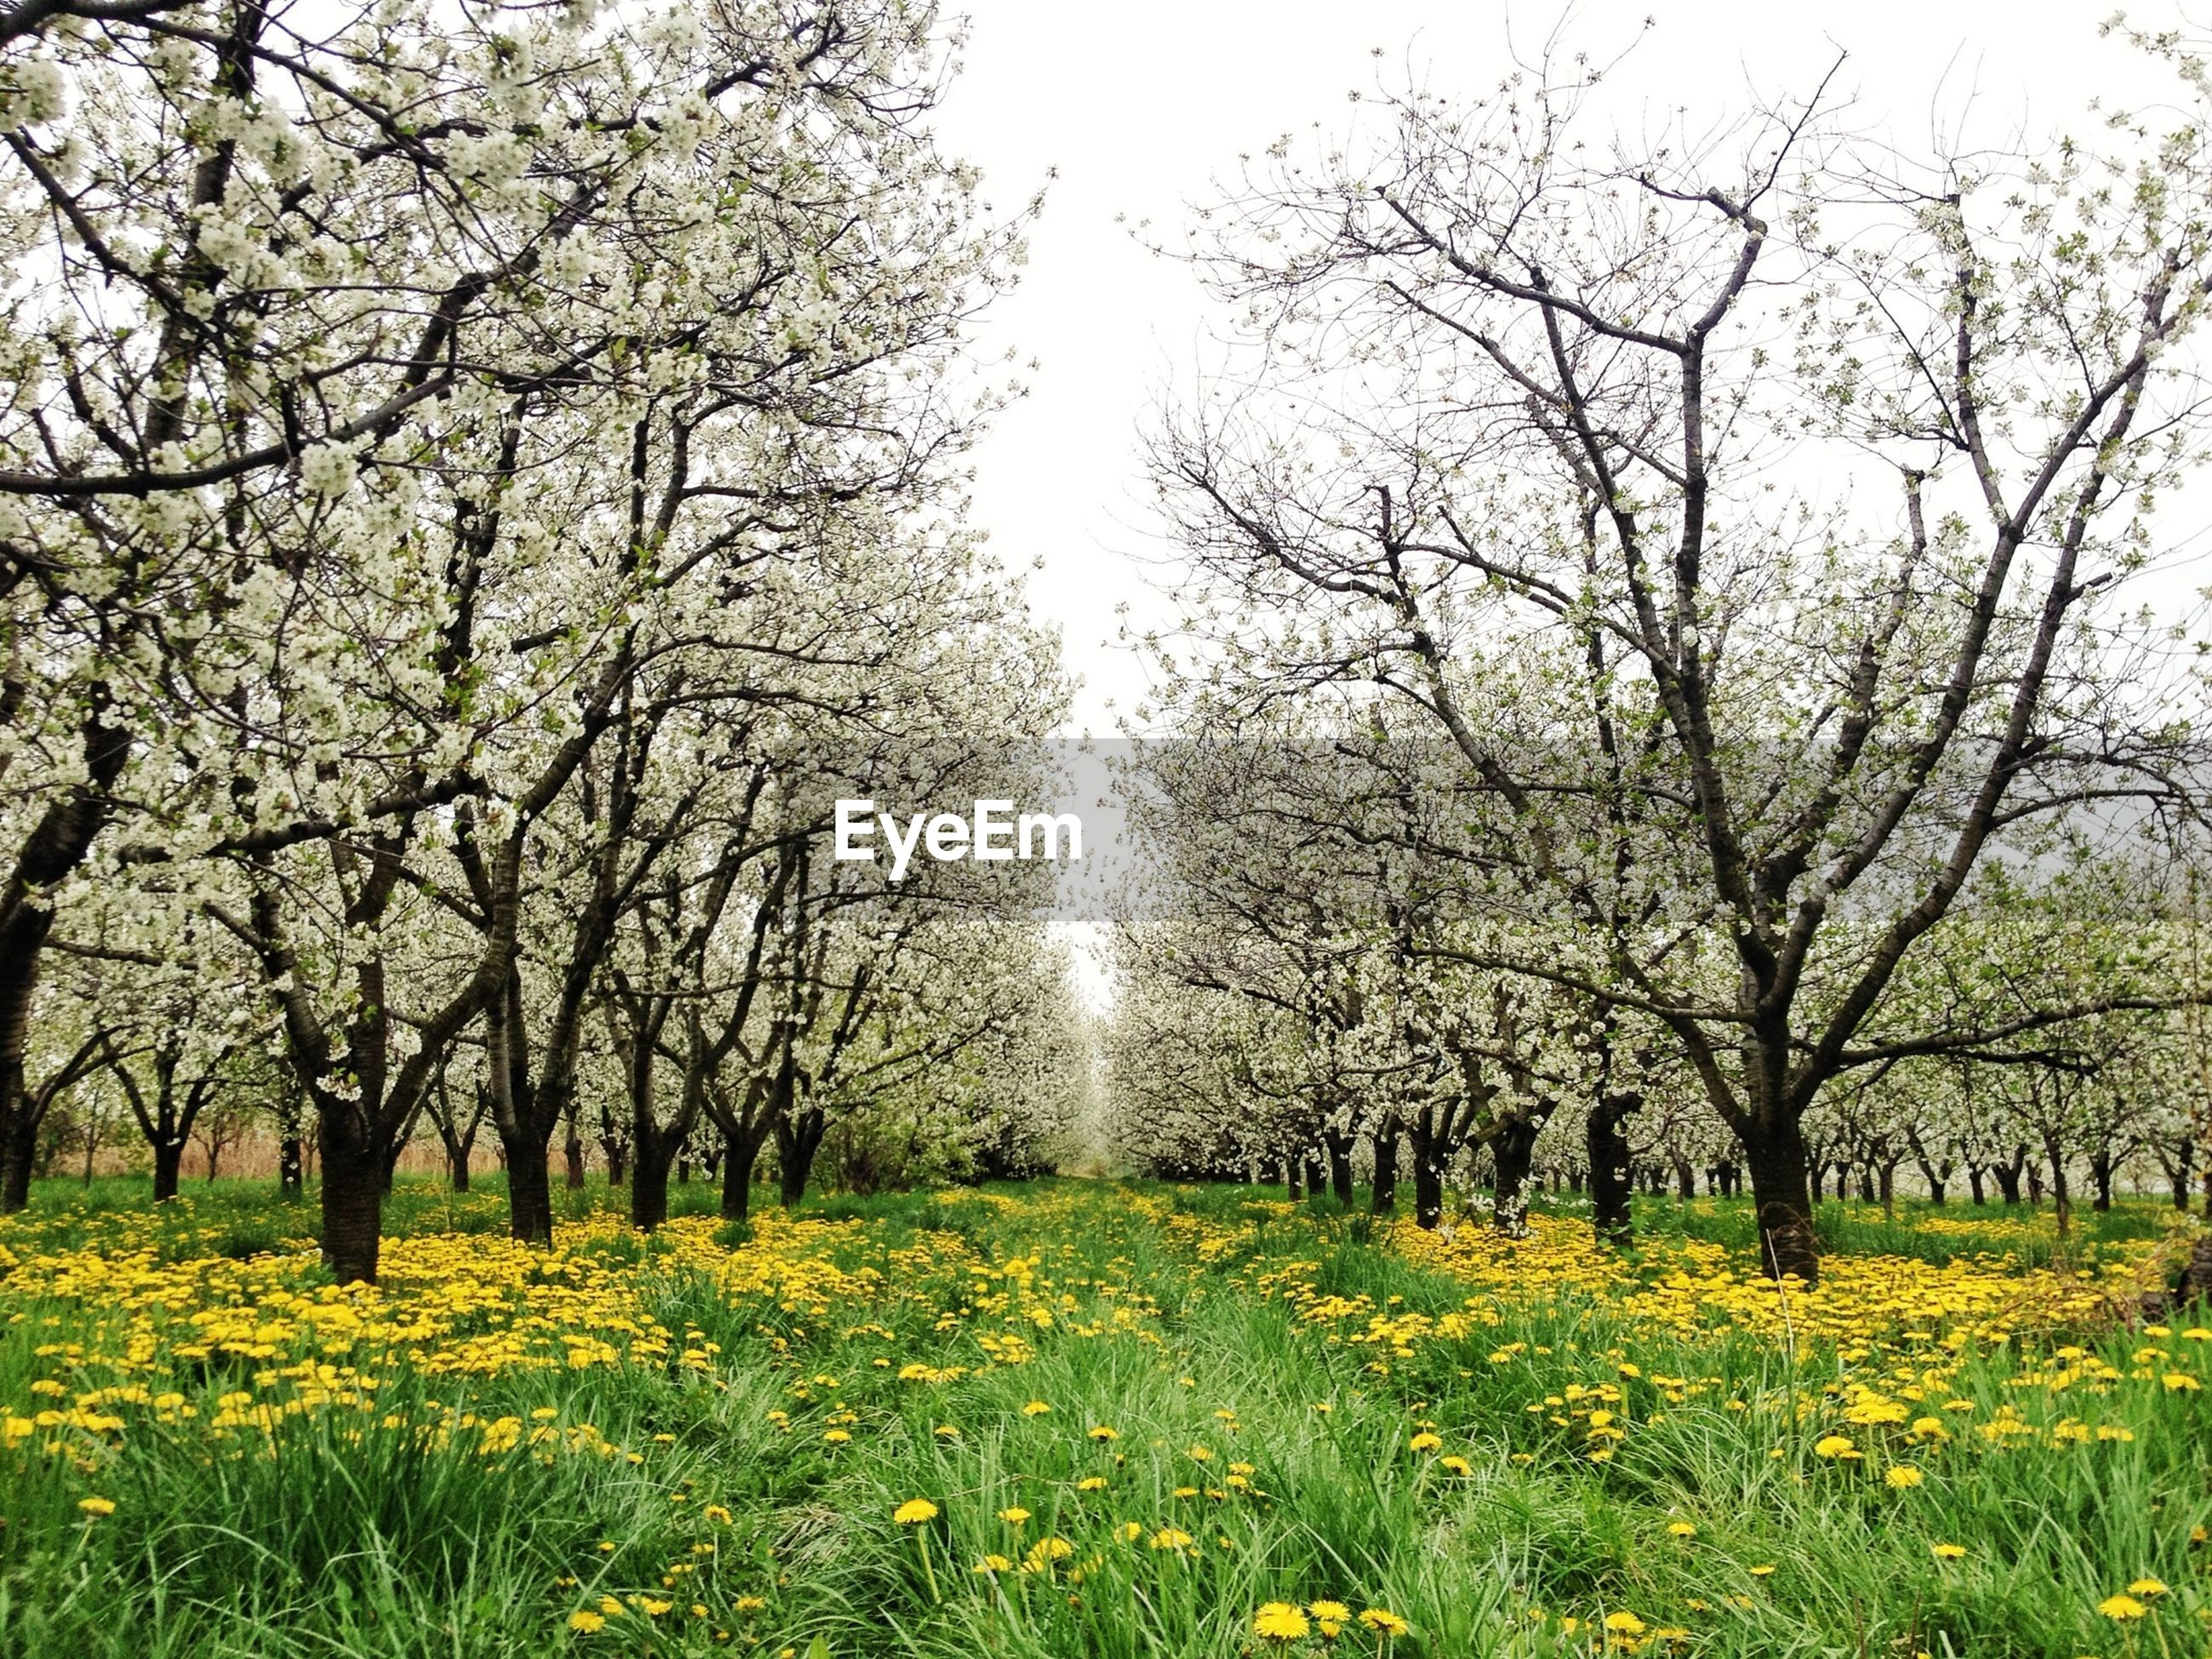 Trees growing amidst yellow flowering plants